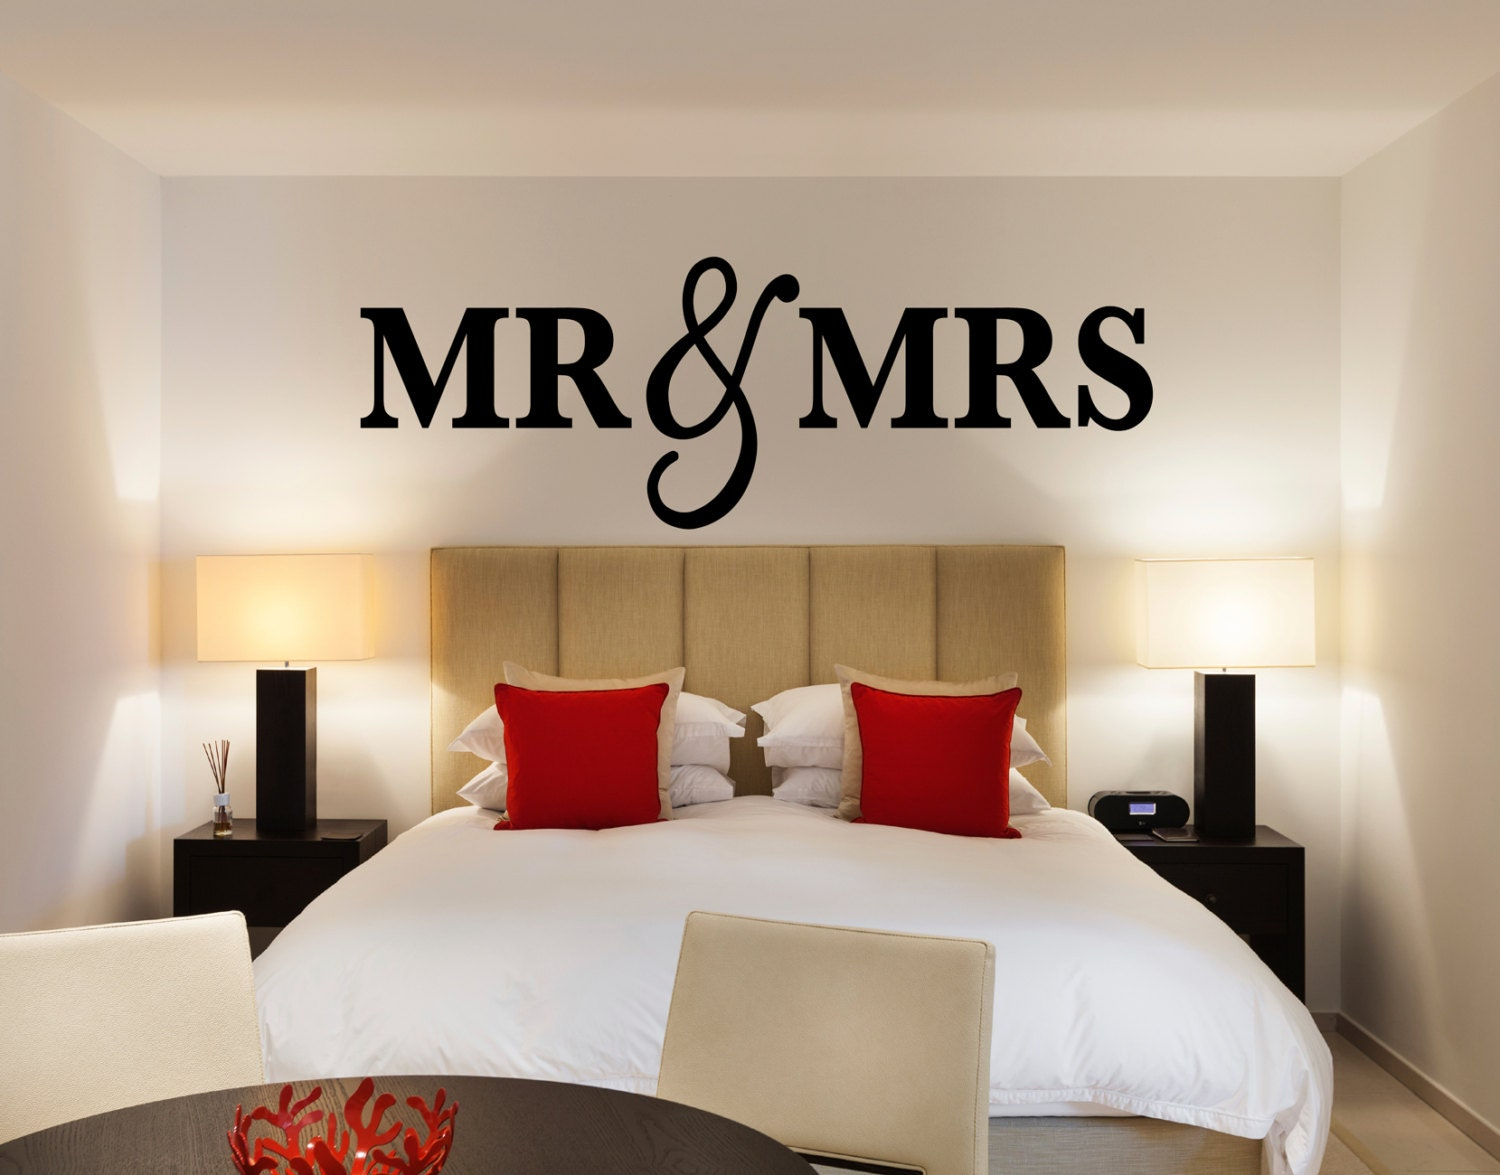 bedroom signs.  zoom Mr Mrs Wall Sign for Bedroom Decor and